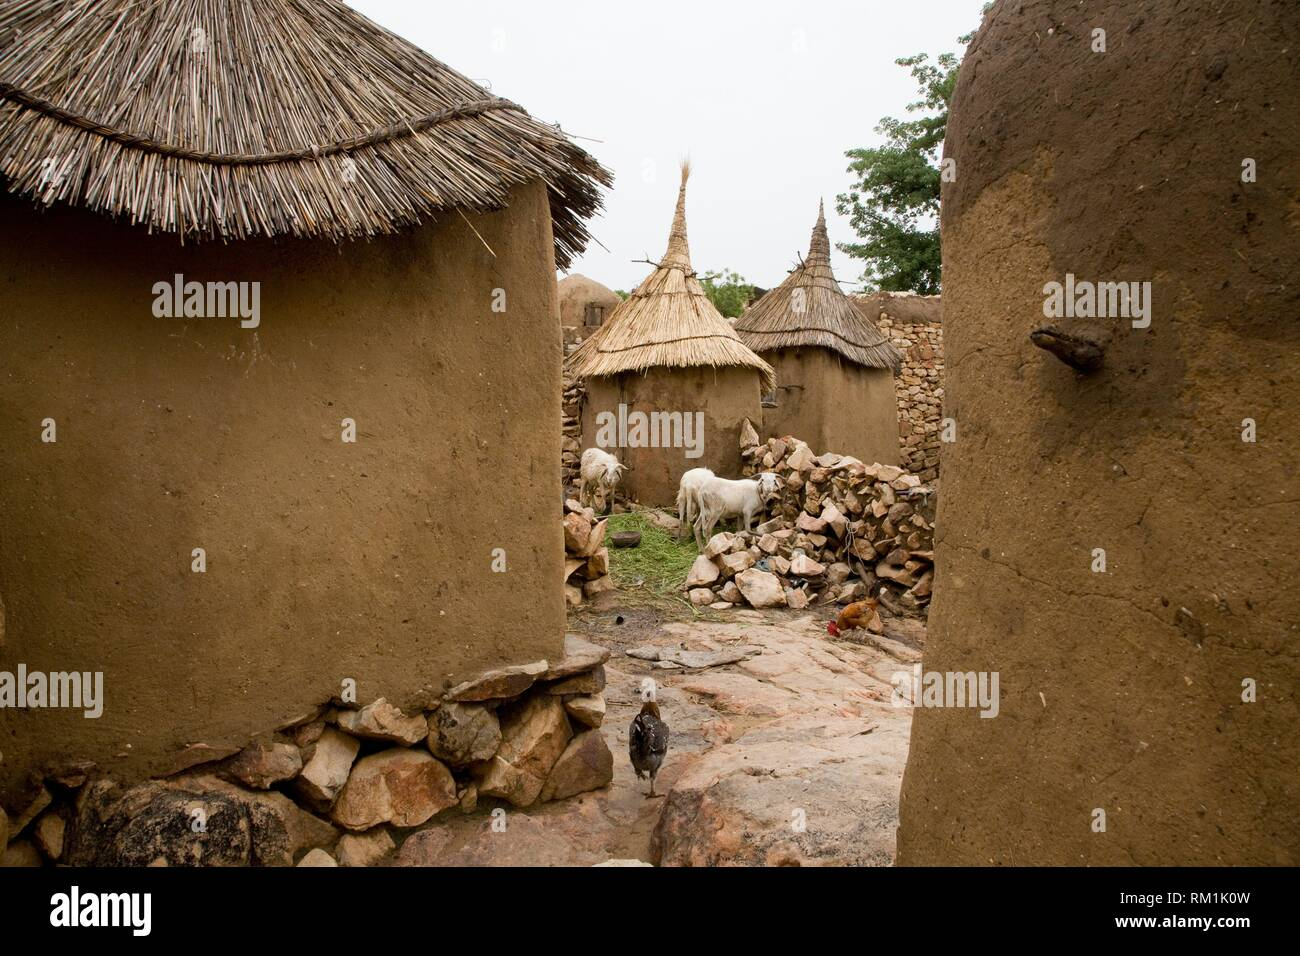 Mali, Dogon Country. Adobe barns in the village of Daga. Hens and goats looking for food on the streets. Stock Photo